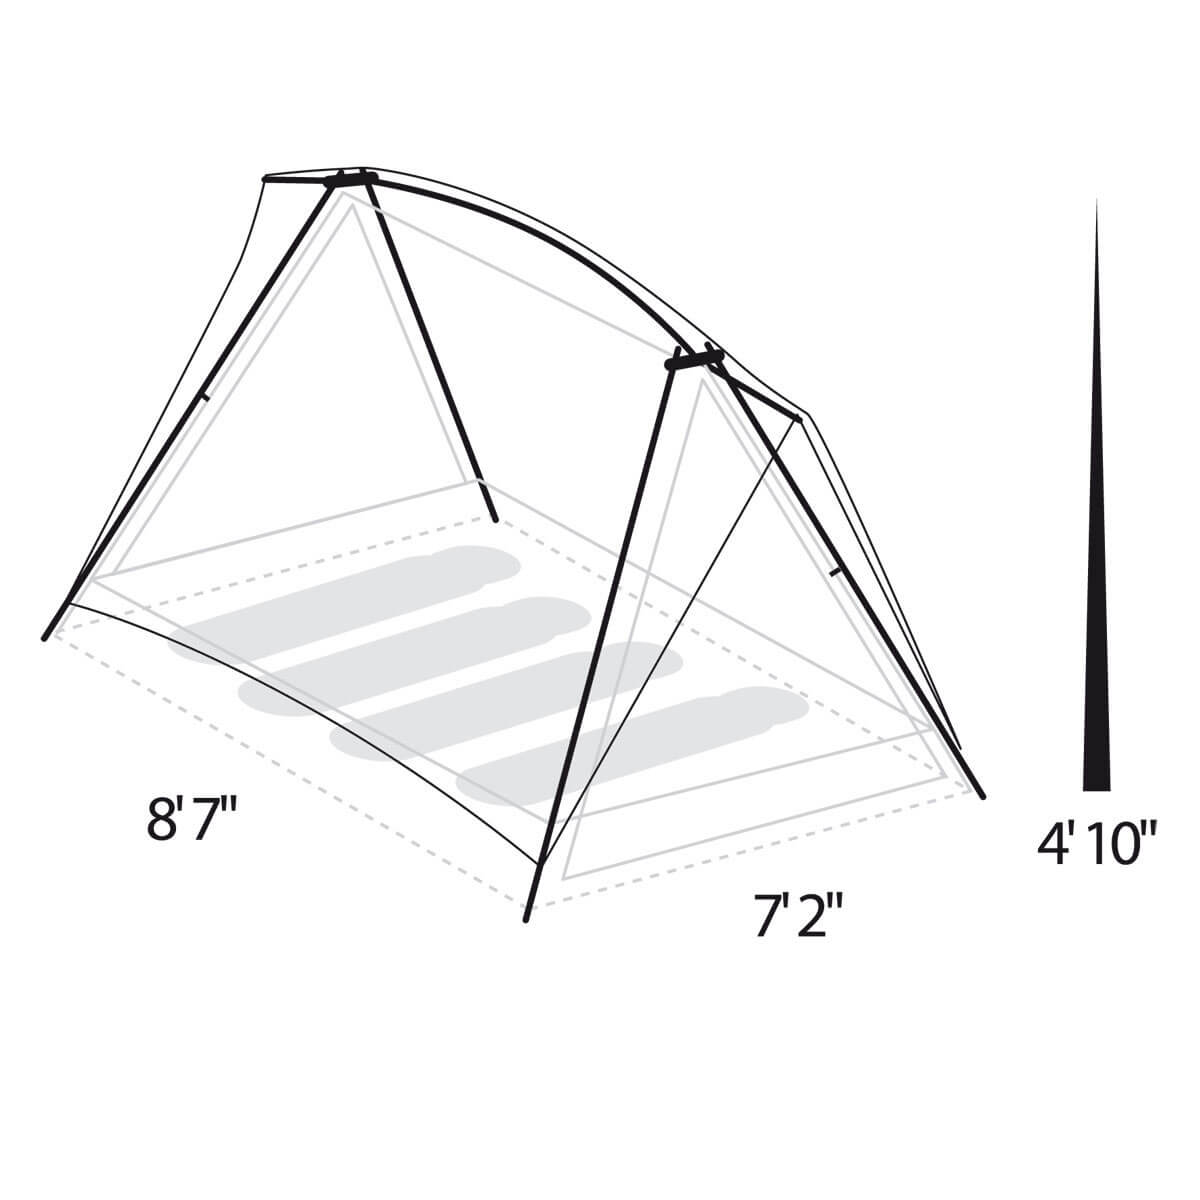 Timberline® 4 Person Tent